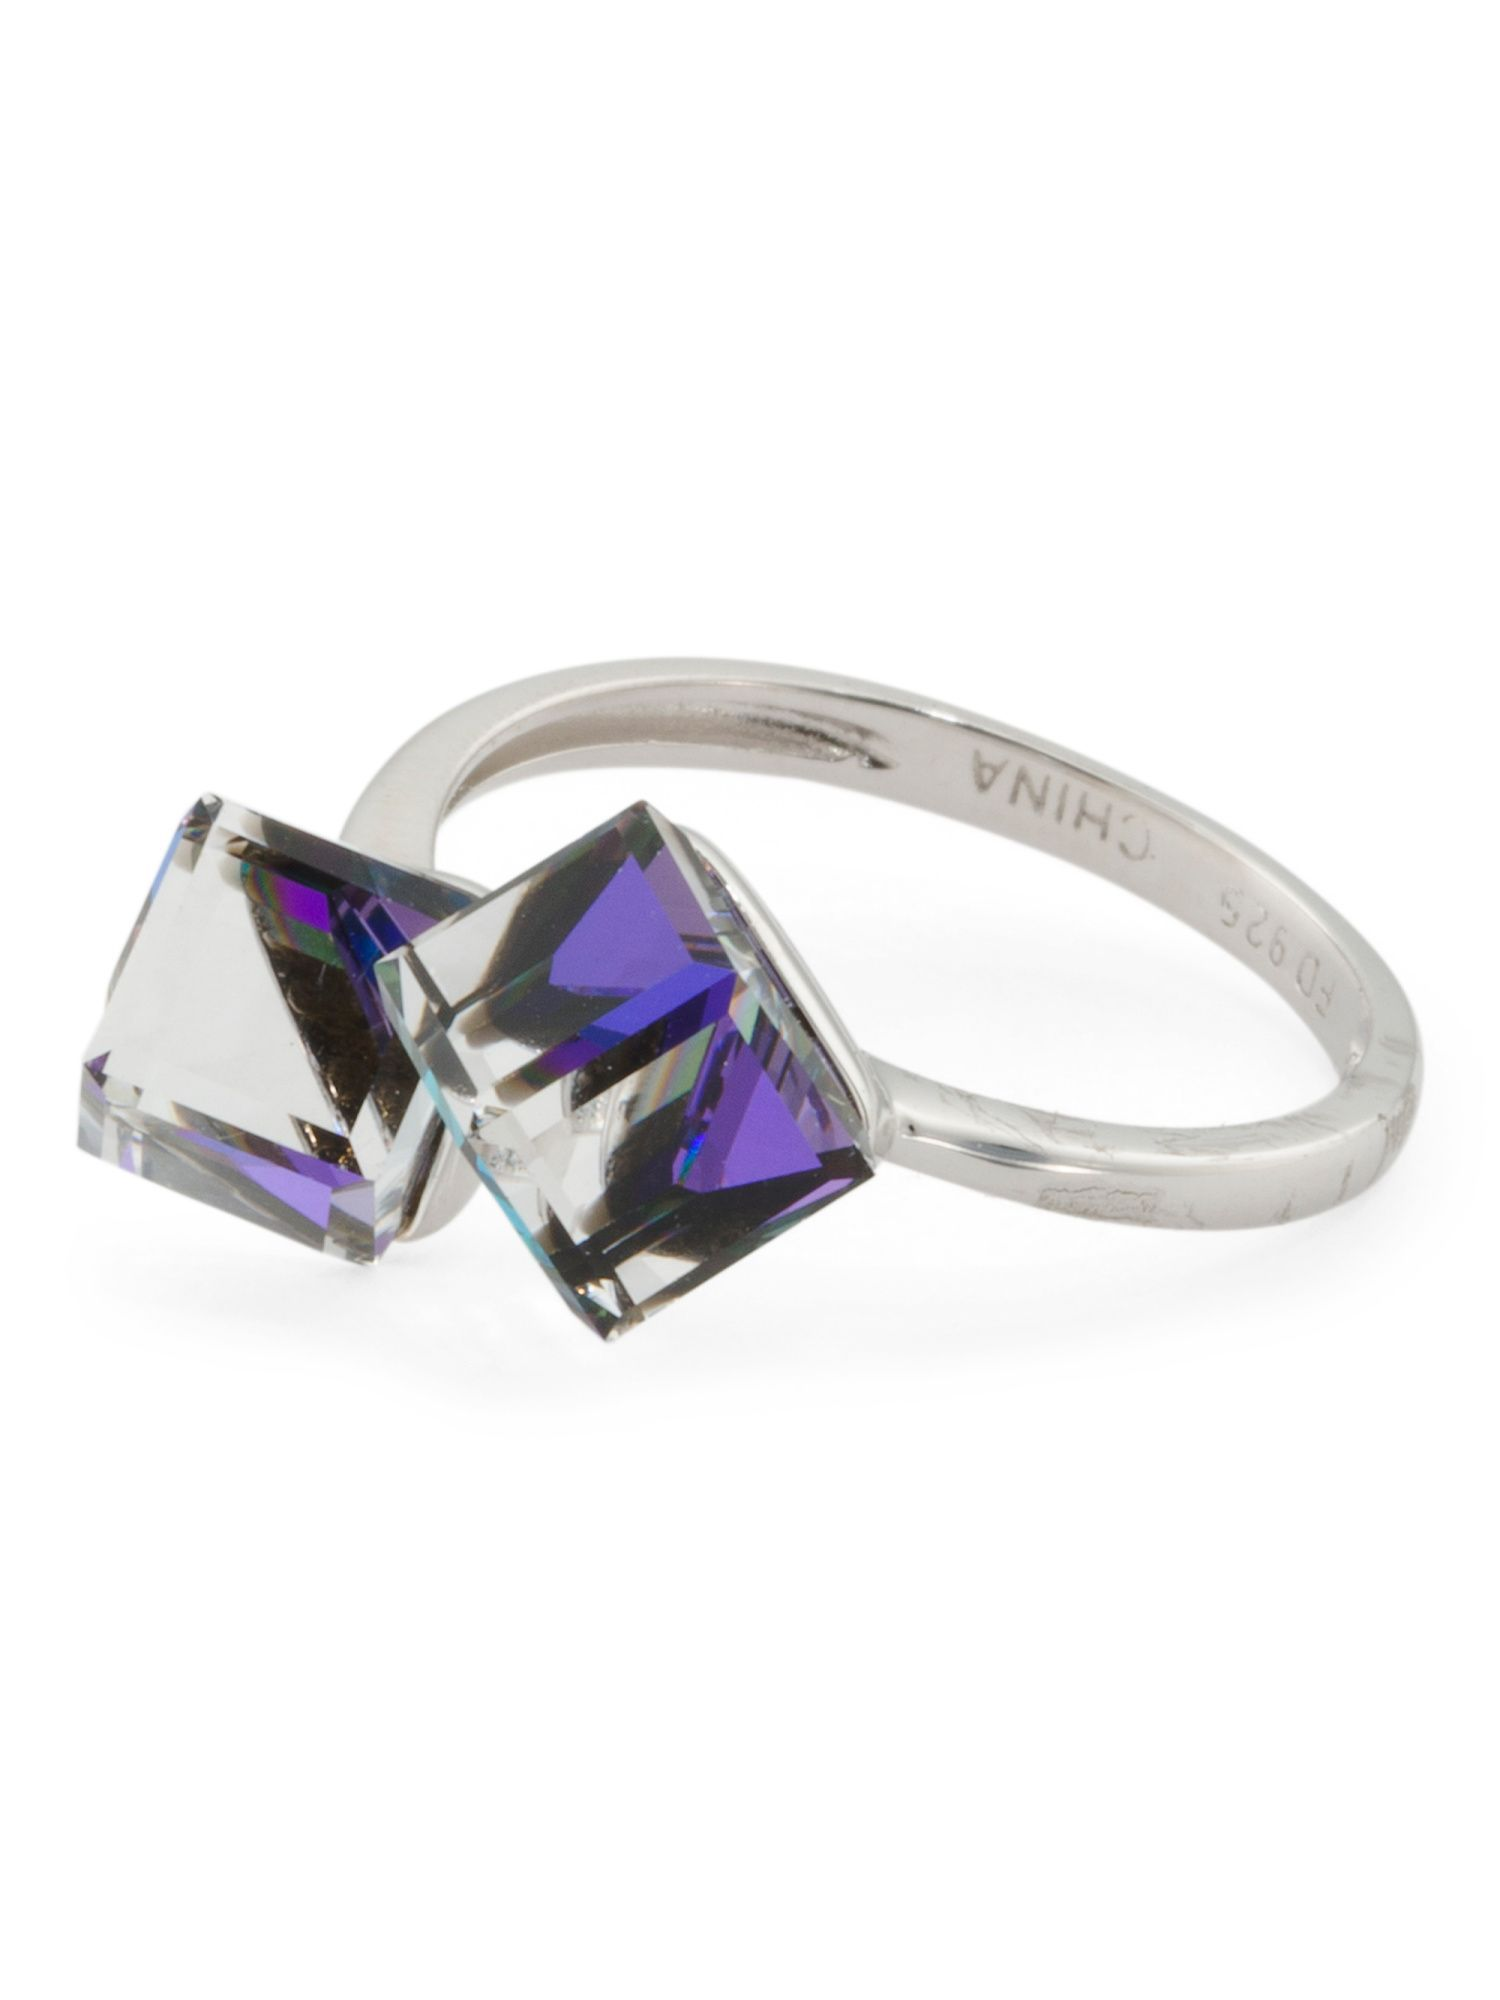 75b1ba418 Sterling Silver Swarovski Crystal Cube Ring | Products | Swarovski ...